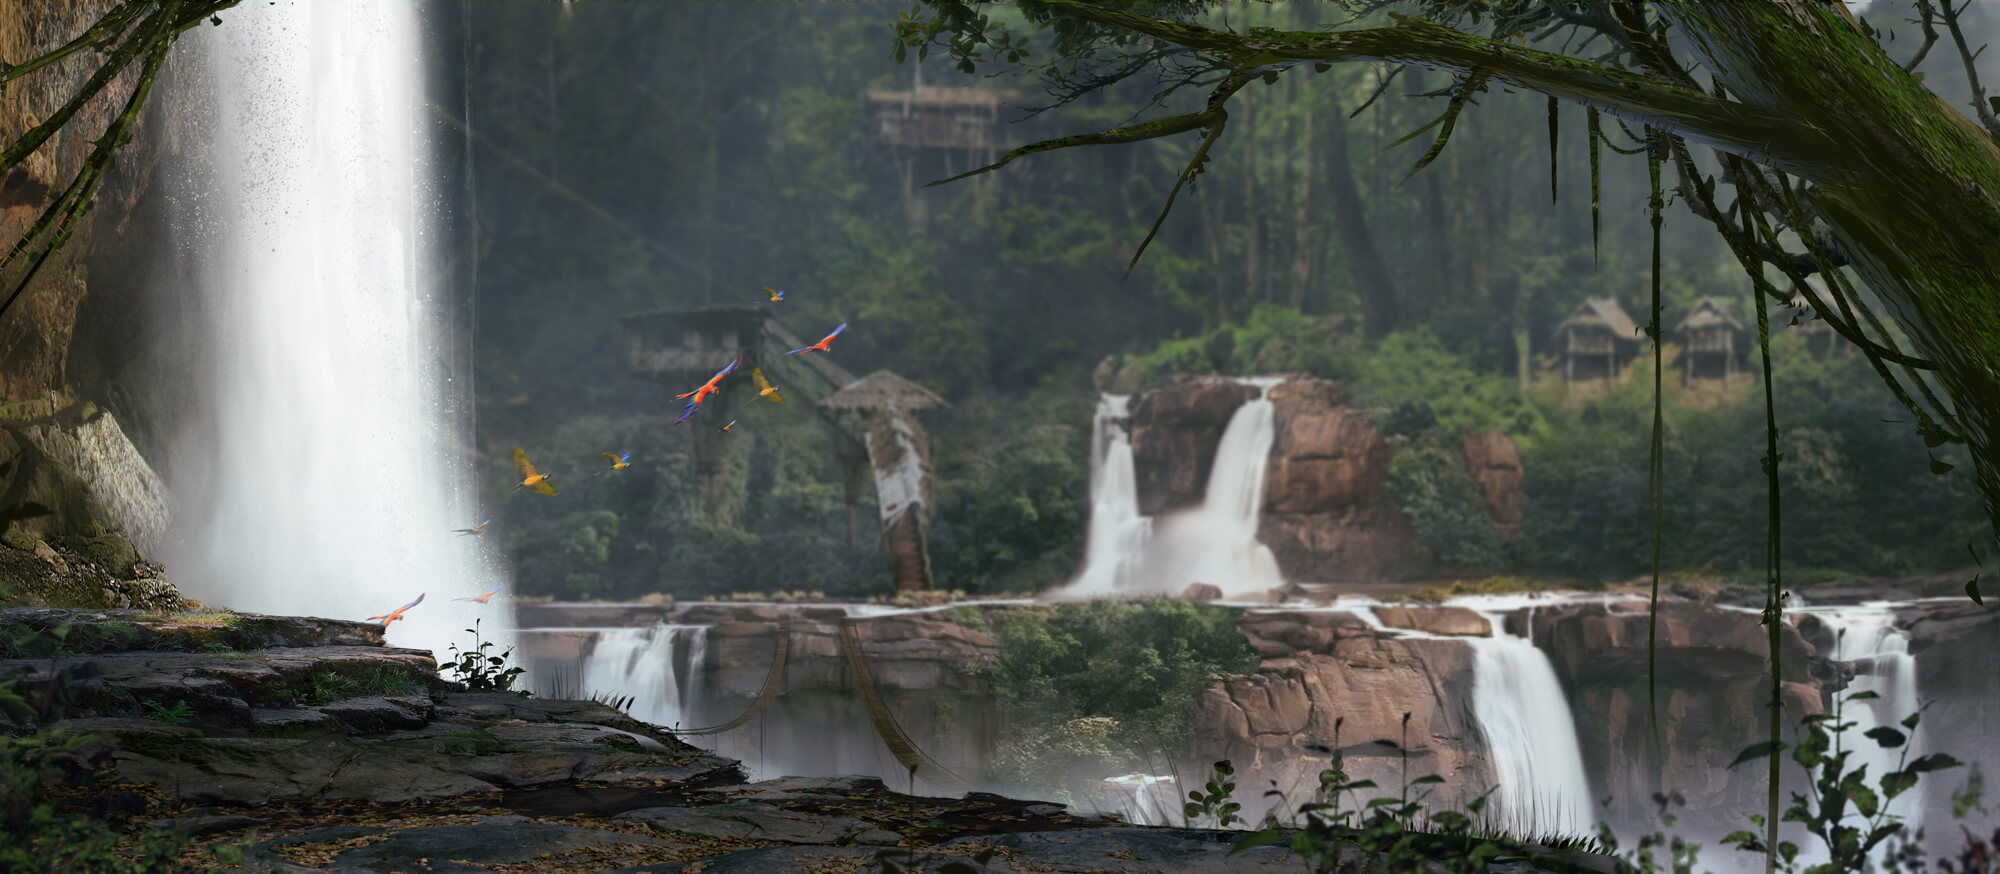 Eloden background. Lush forest with waterfall. Rope bridges span a canyon and primitive structures hide amoung the trees.